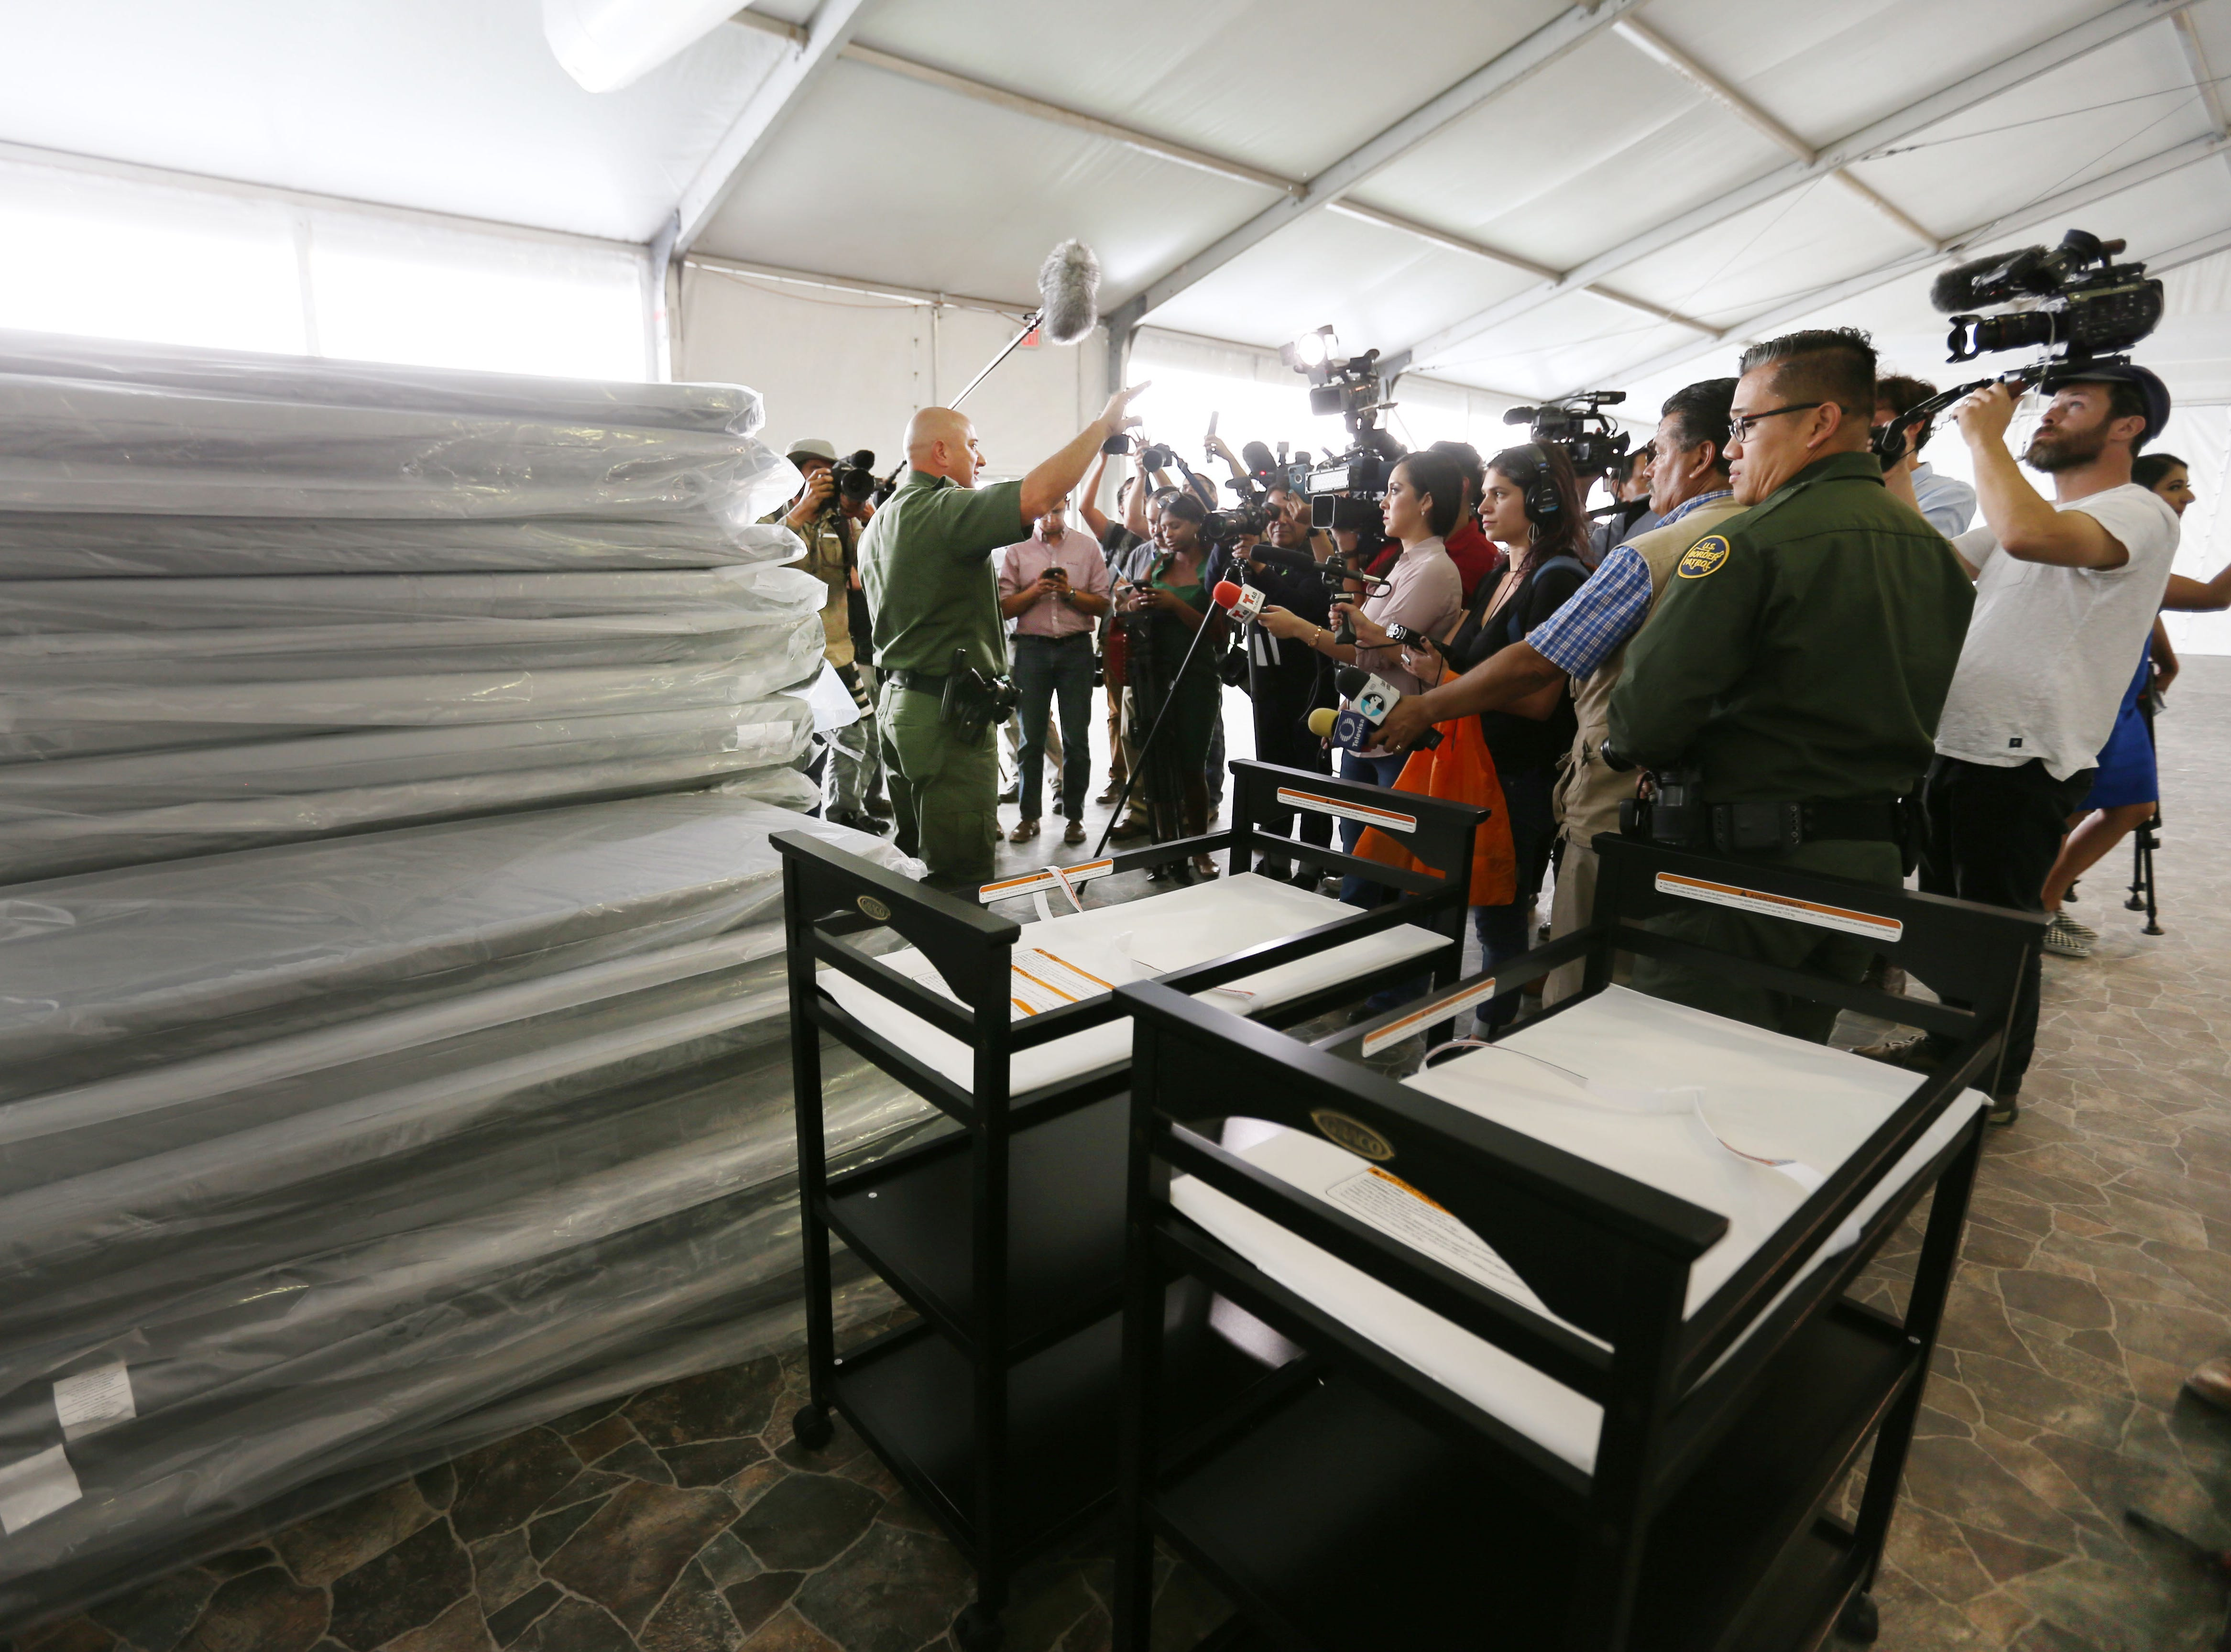 Border Patrol agent Ramiro Cordero gives a media tour of a new temporary holding facility Thursday, May 2, located at 9201 Gateway S. Blvd. in El Paso. The 32,000 square foot facility is broken into four sections. Each section can hold 125 people.